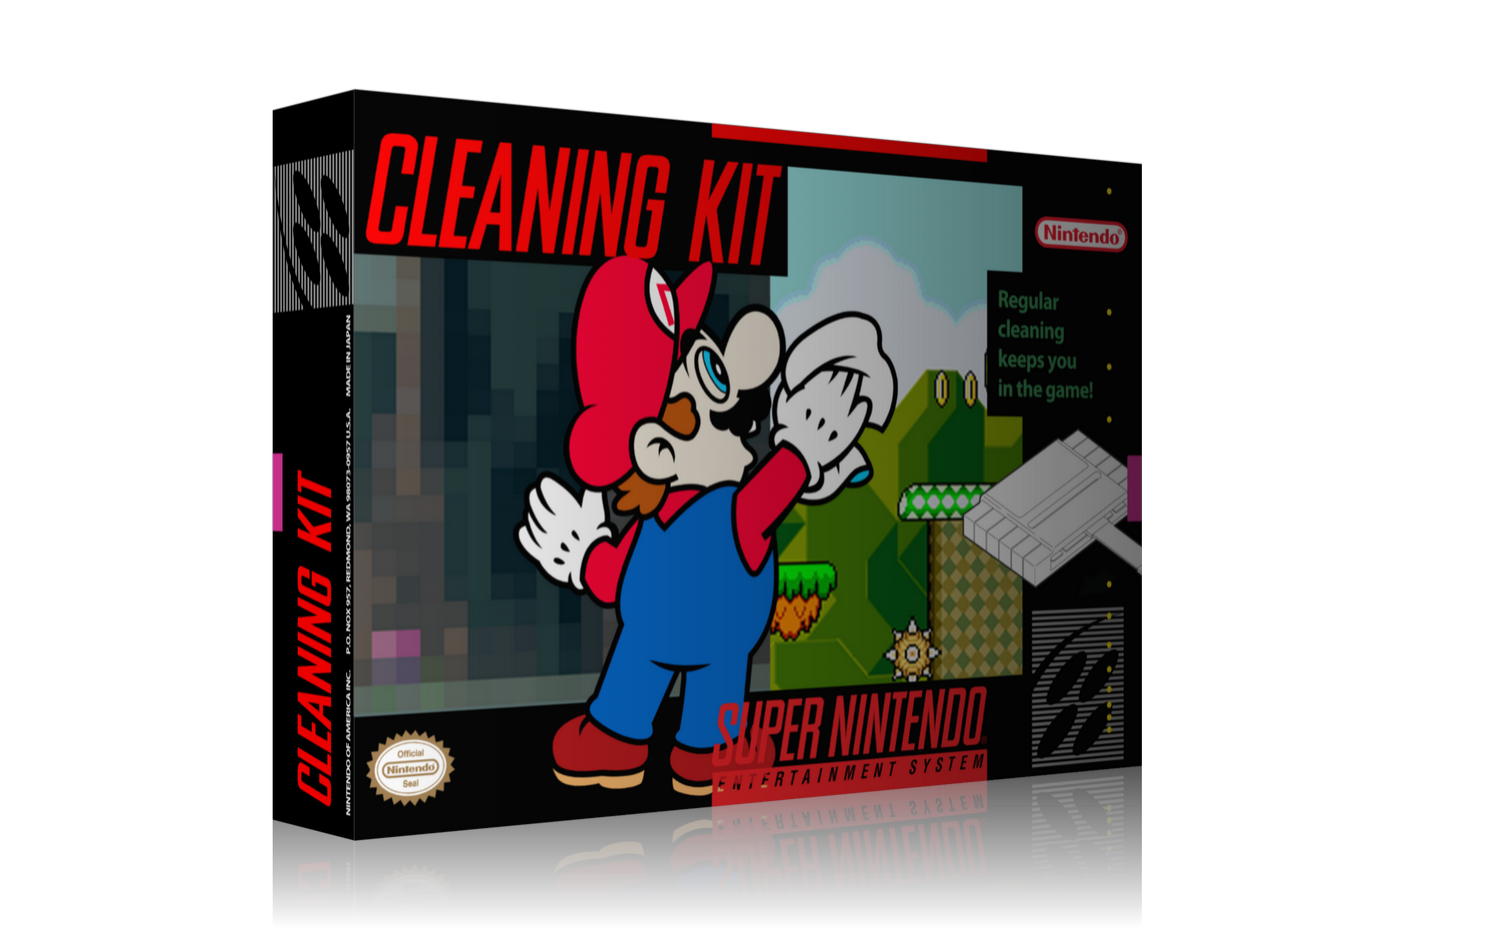 Super Nintendo Cleaning Kit Box Cover